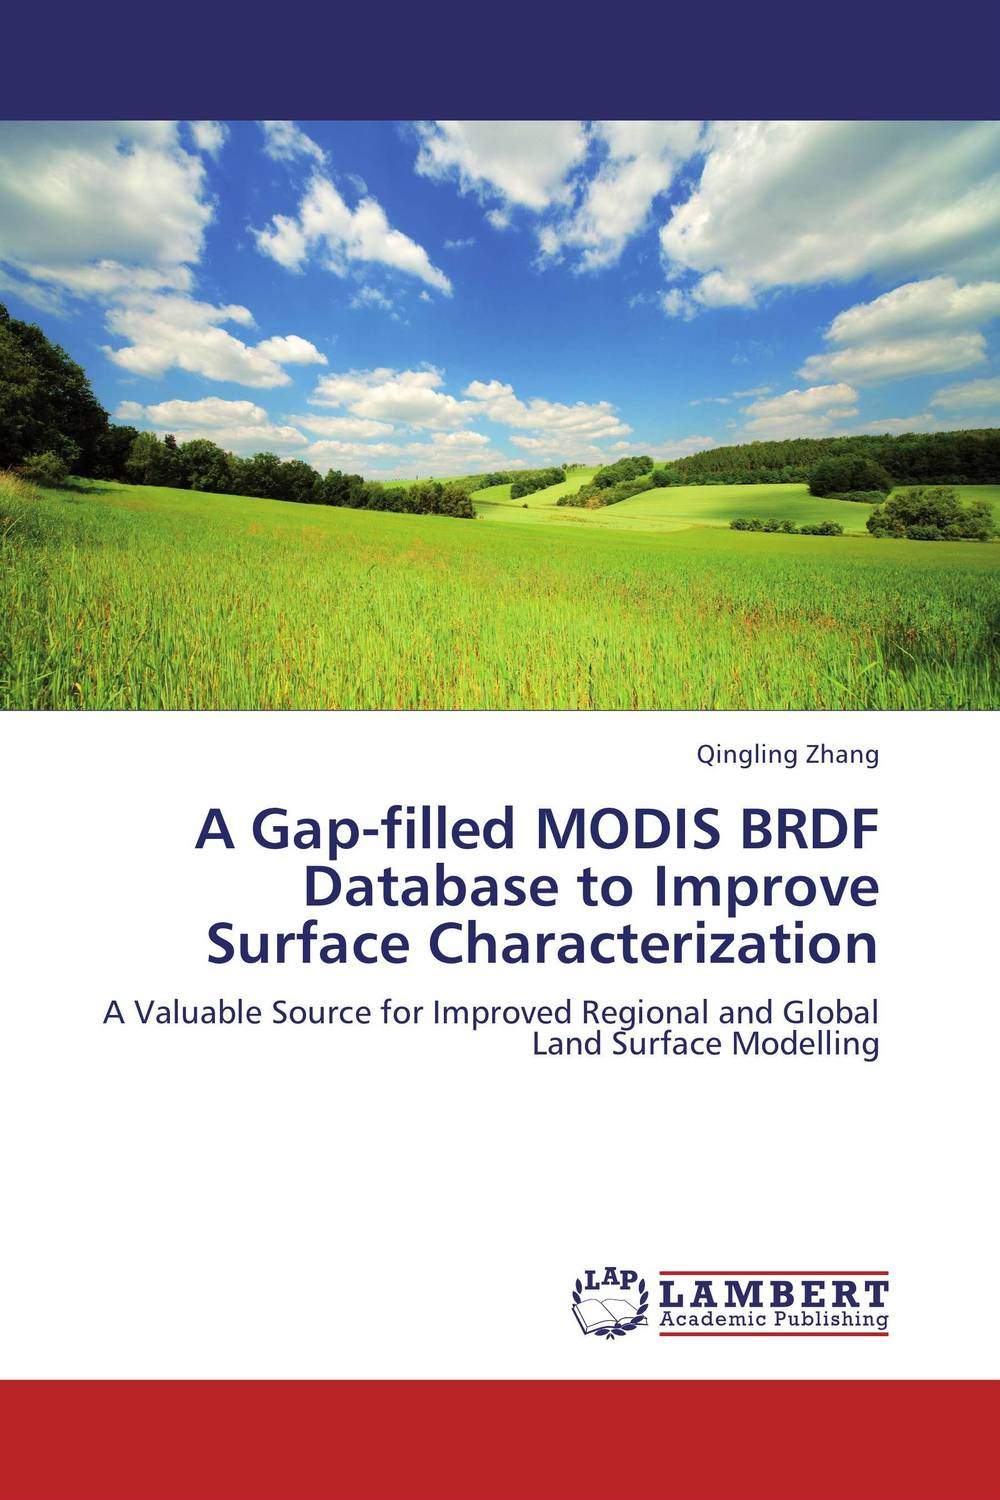 A Gap-filled MODIS BRDF Database to Improve Surface Characterization лонгслив gap gap ga020ewvdq20